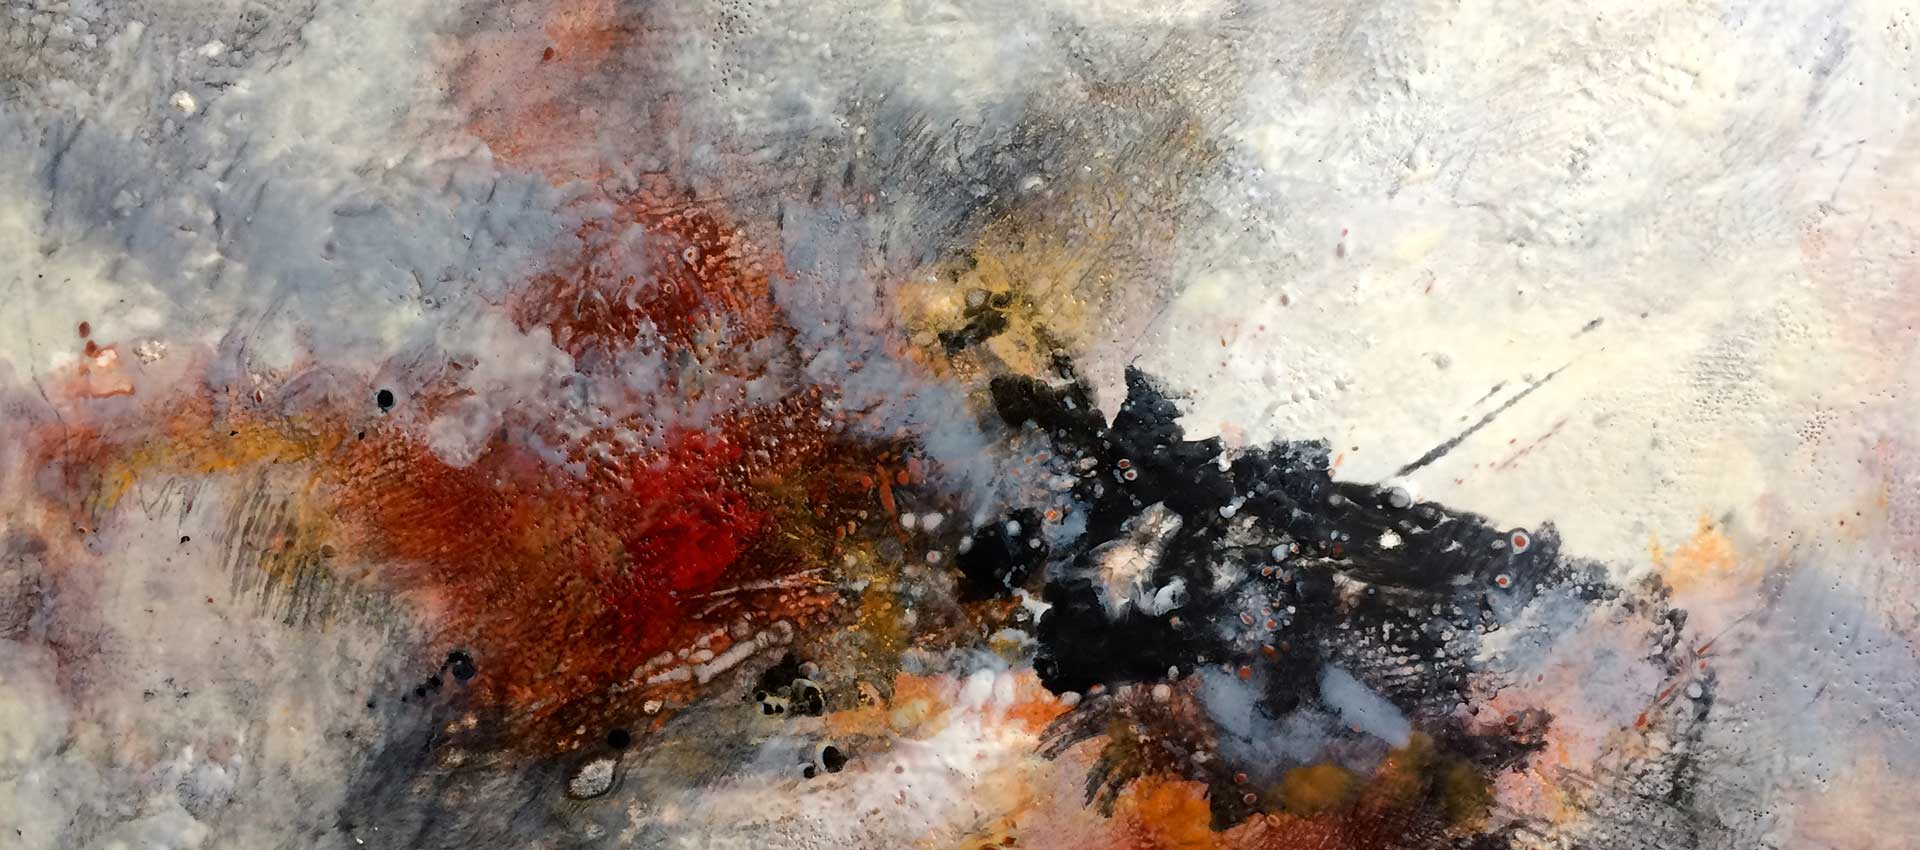 Revelation | 24 x 36 |encaustic on wood panel | Anne Wright | available for rent or sale Ottawa Art Gallery Sales and Rentals